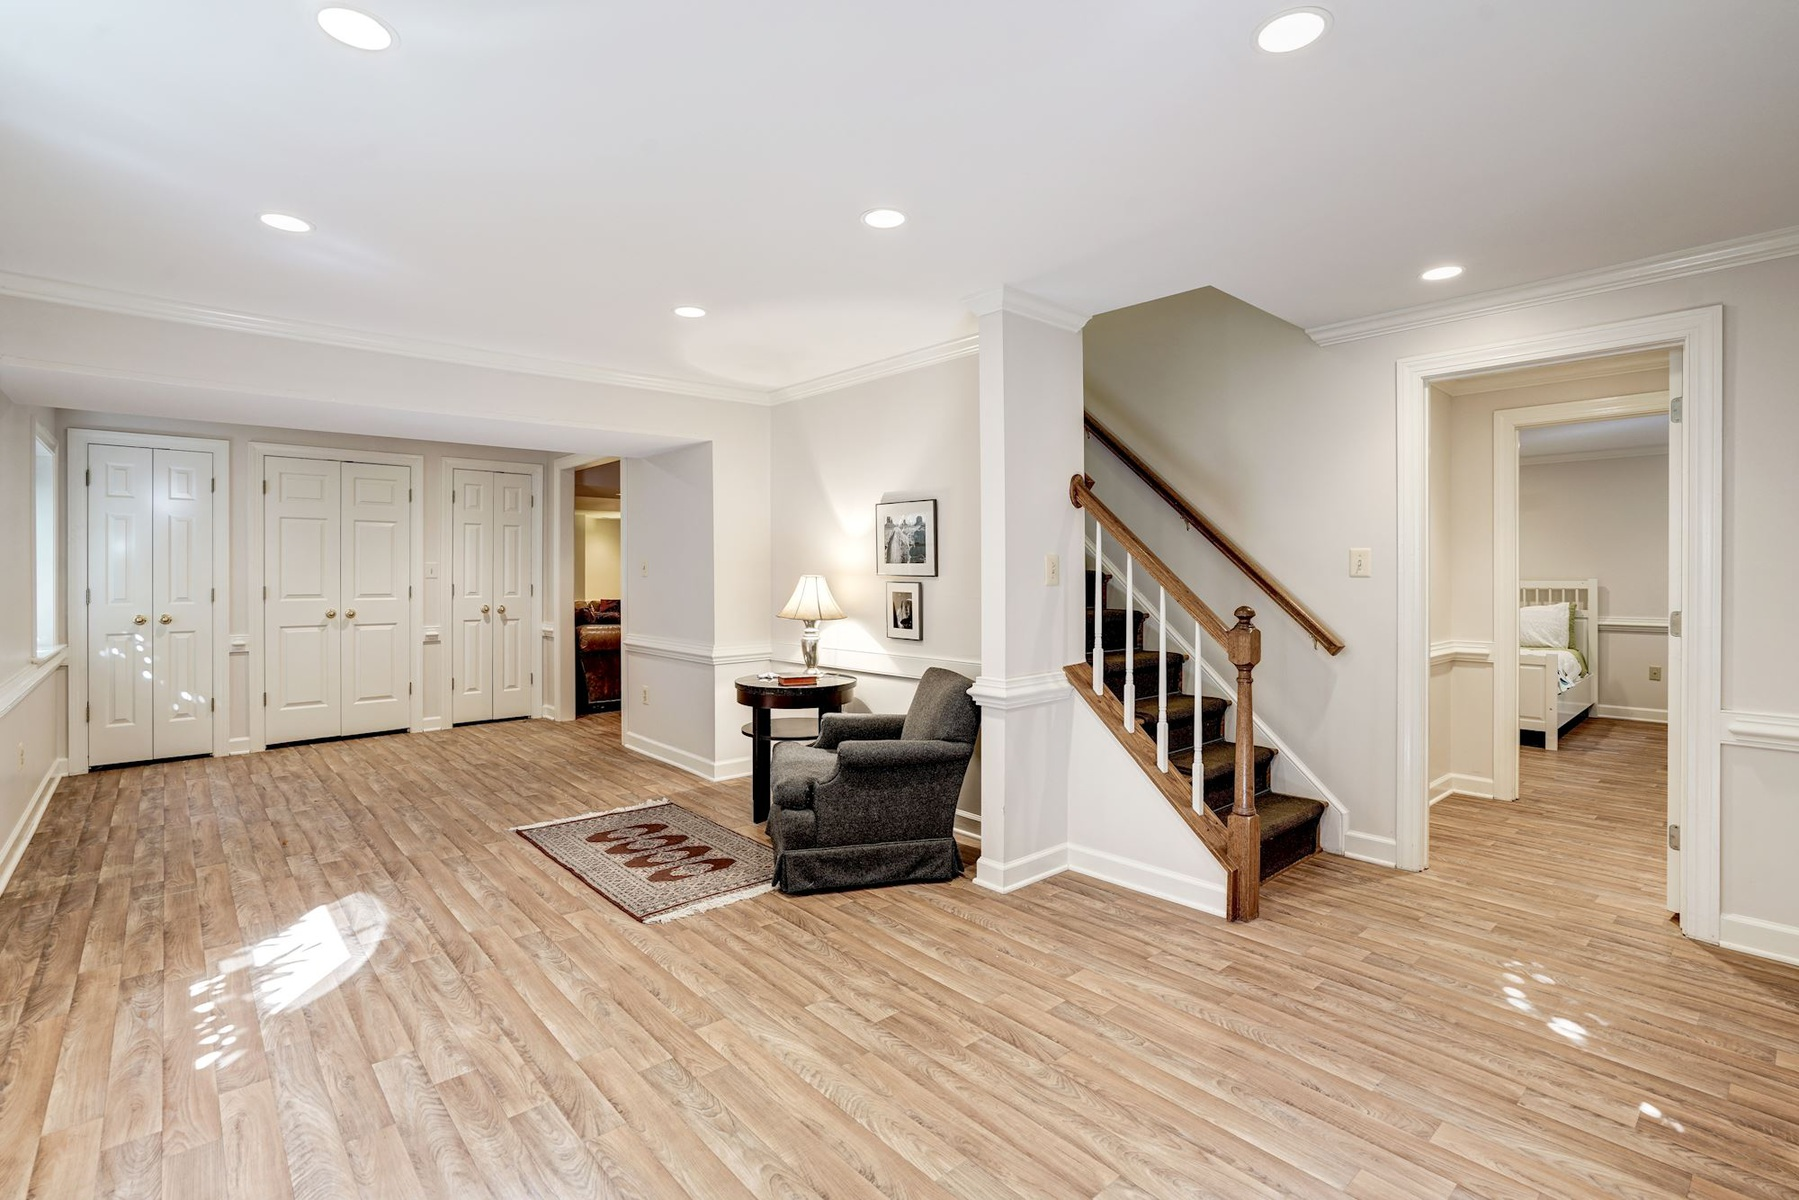 Additional photo for property listing at Quaker Hill 1263 Dartmouth Ct Alexandria, Βιρτζινια 22314 Ηνωμενεσ Πολιτειεσ